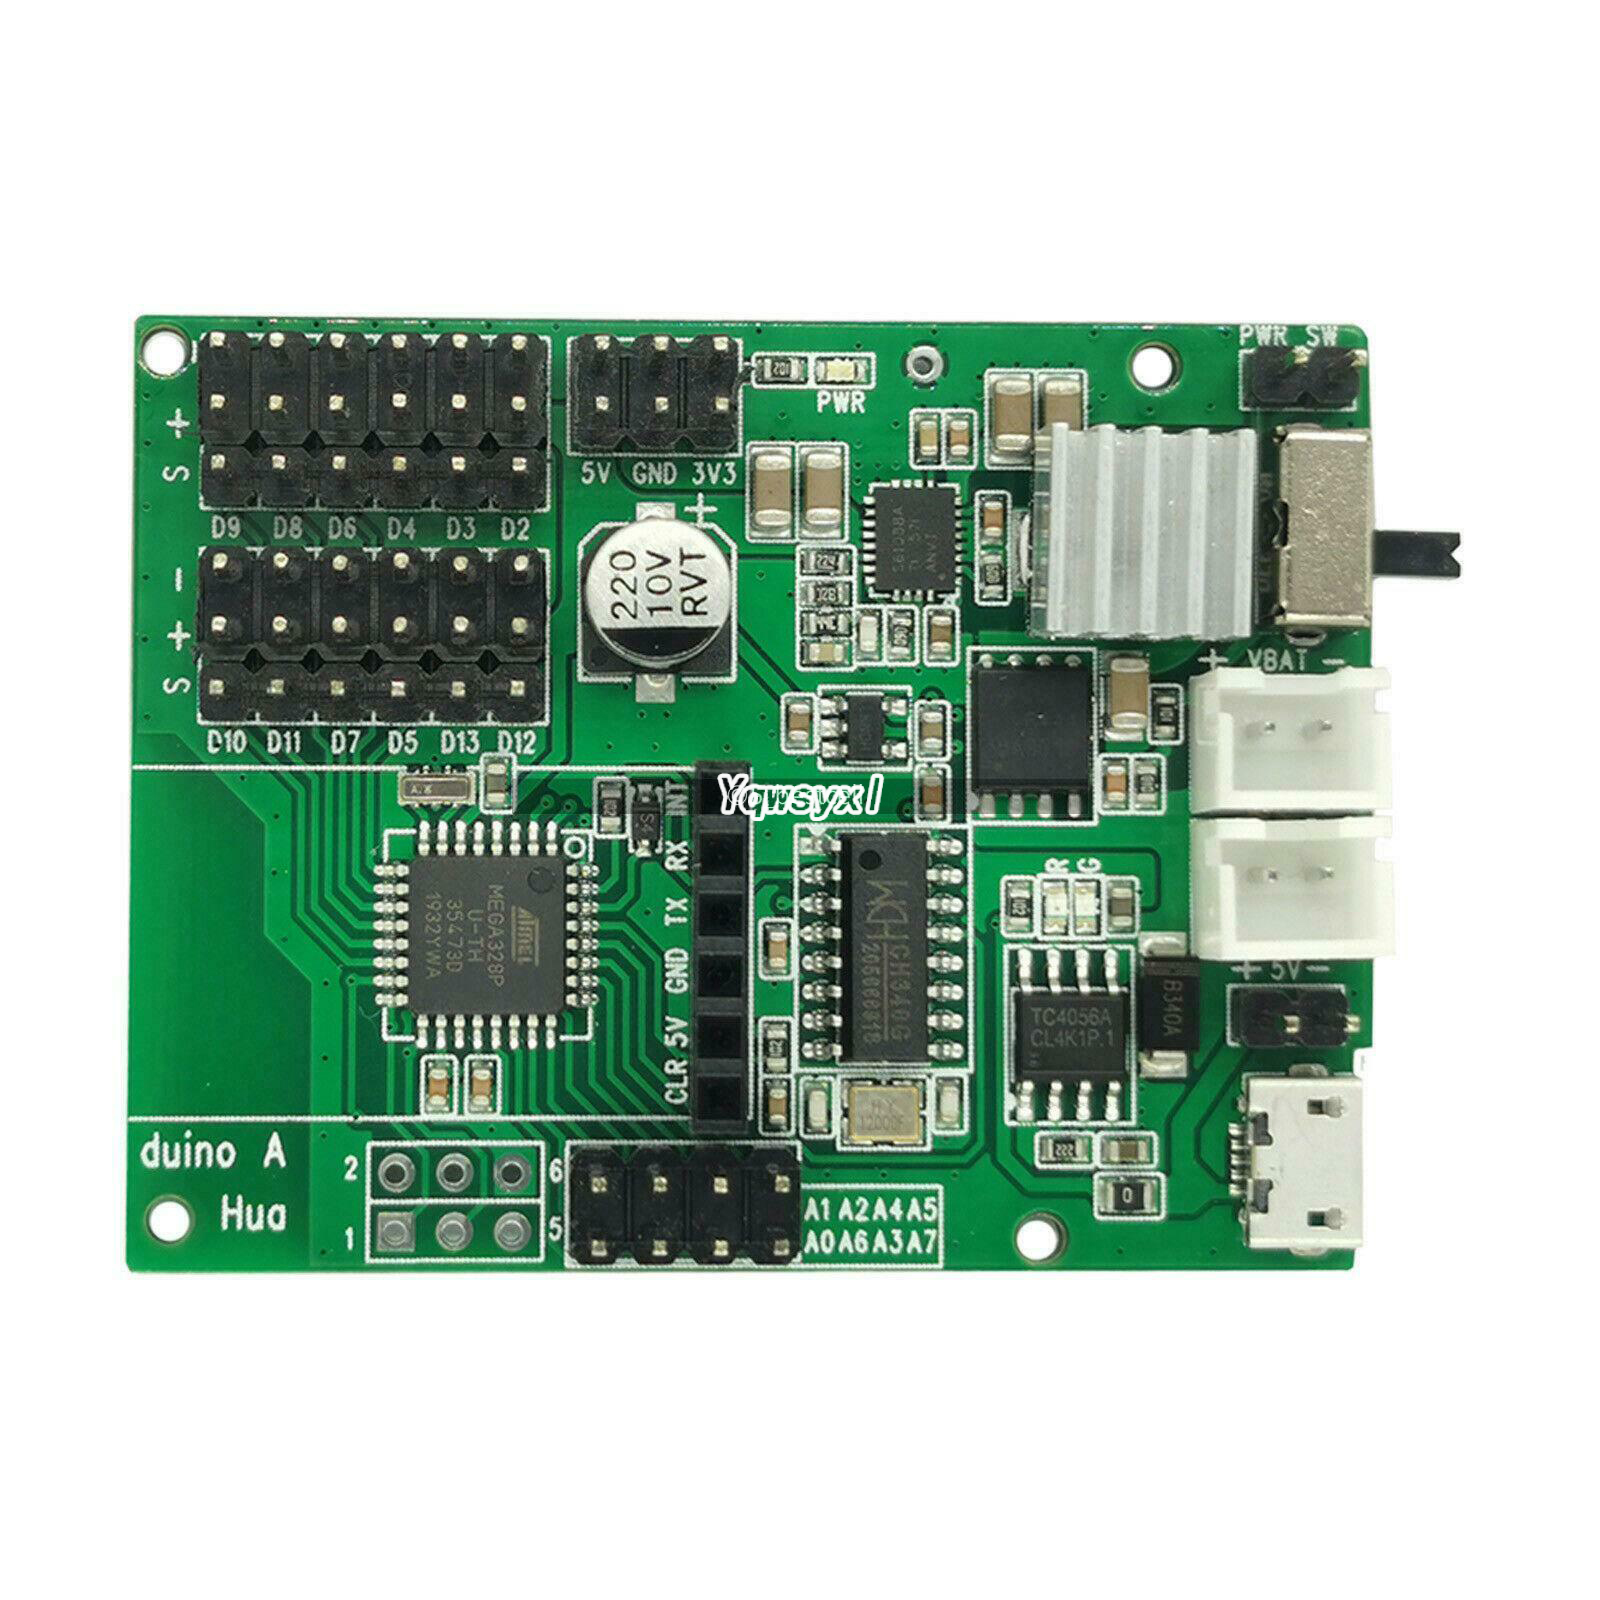 Yqwsyxl For HuaDuino - Arduino Compatible Board With Lithium Battery Power Up And Charging